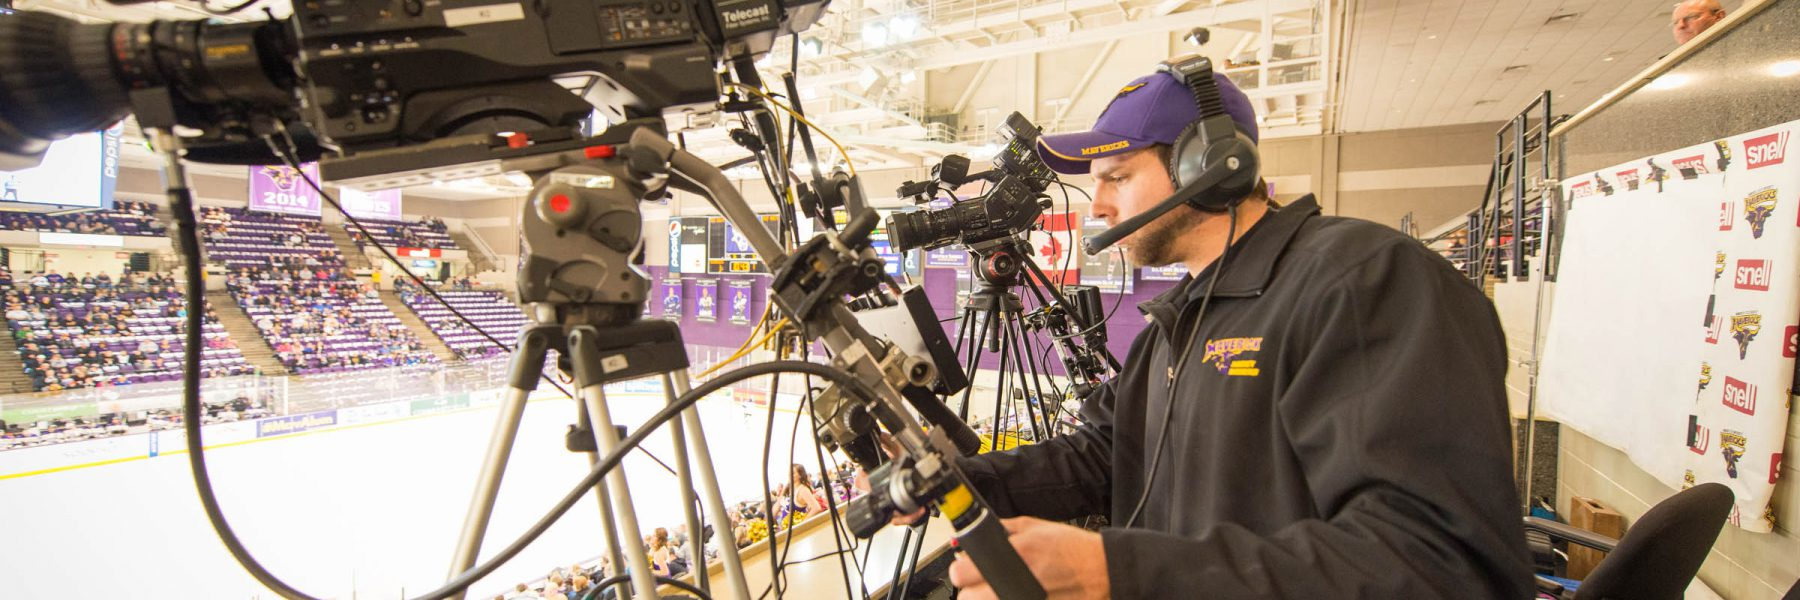 MSU hockey broadcast camera operator